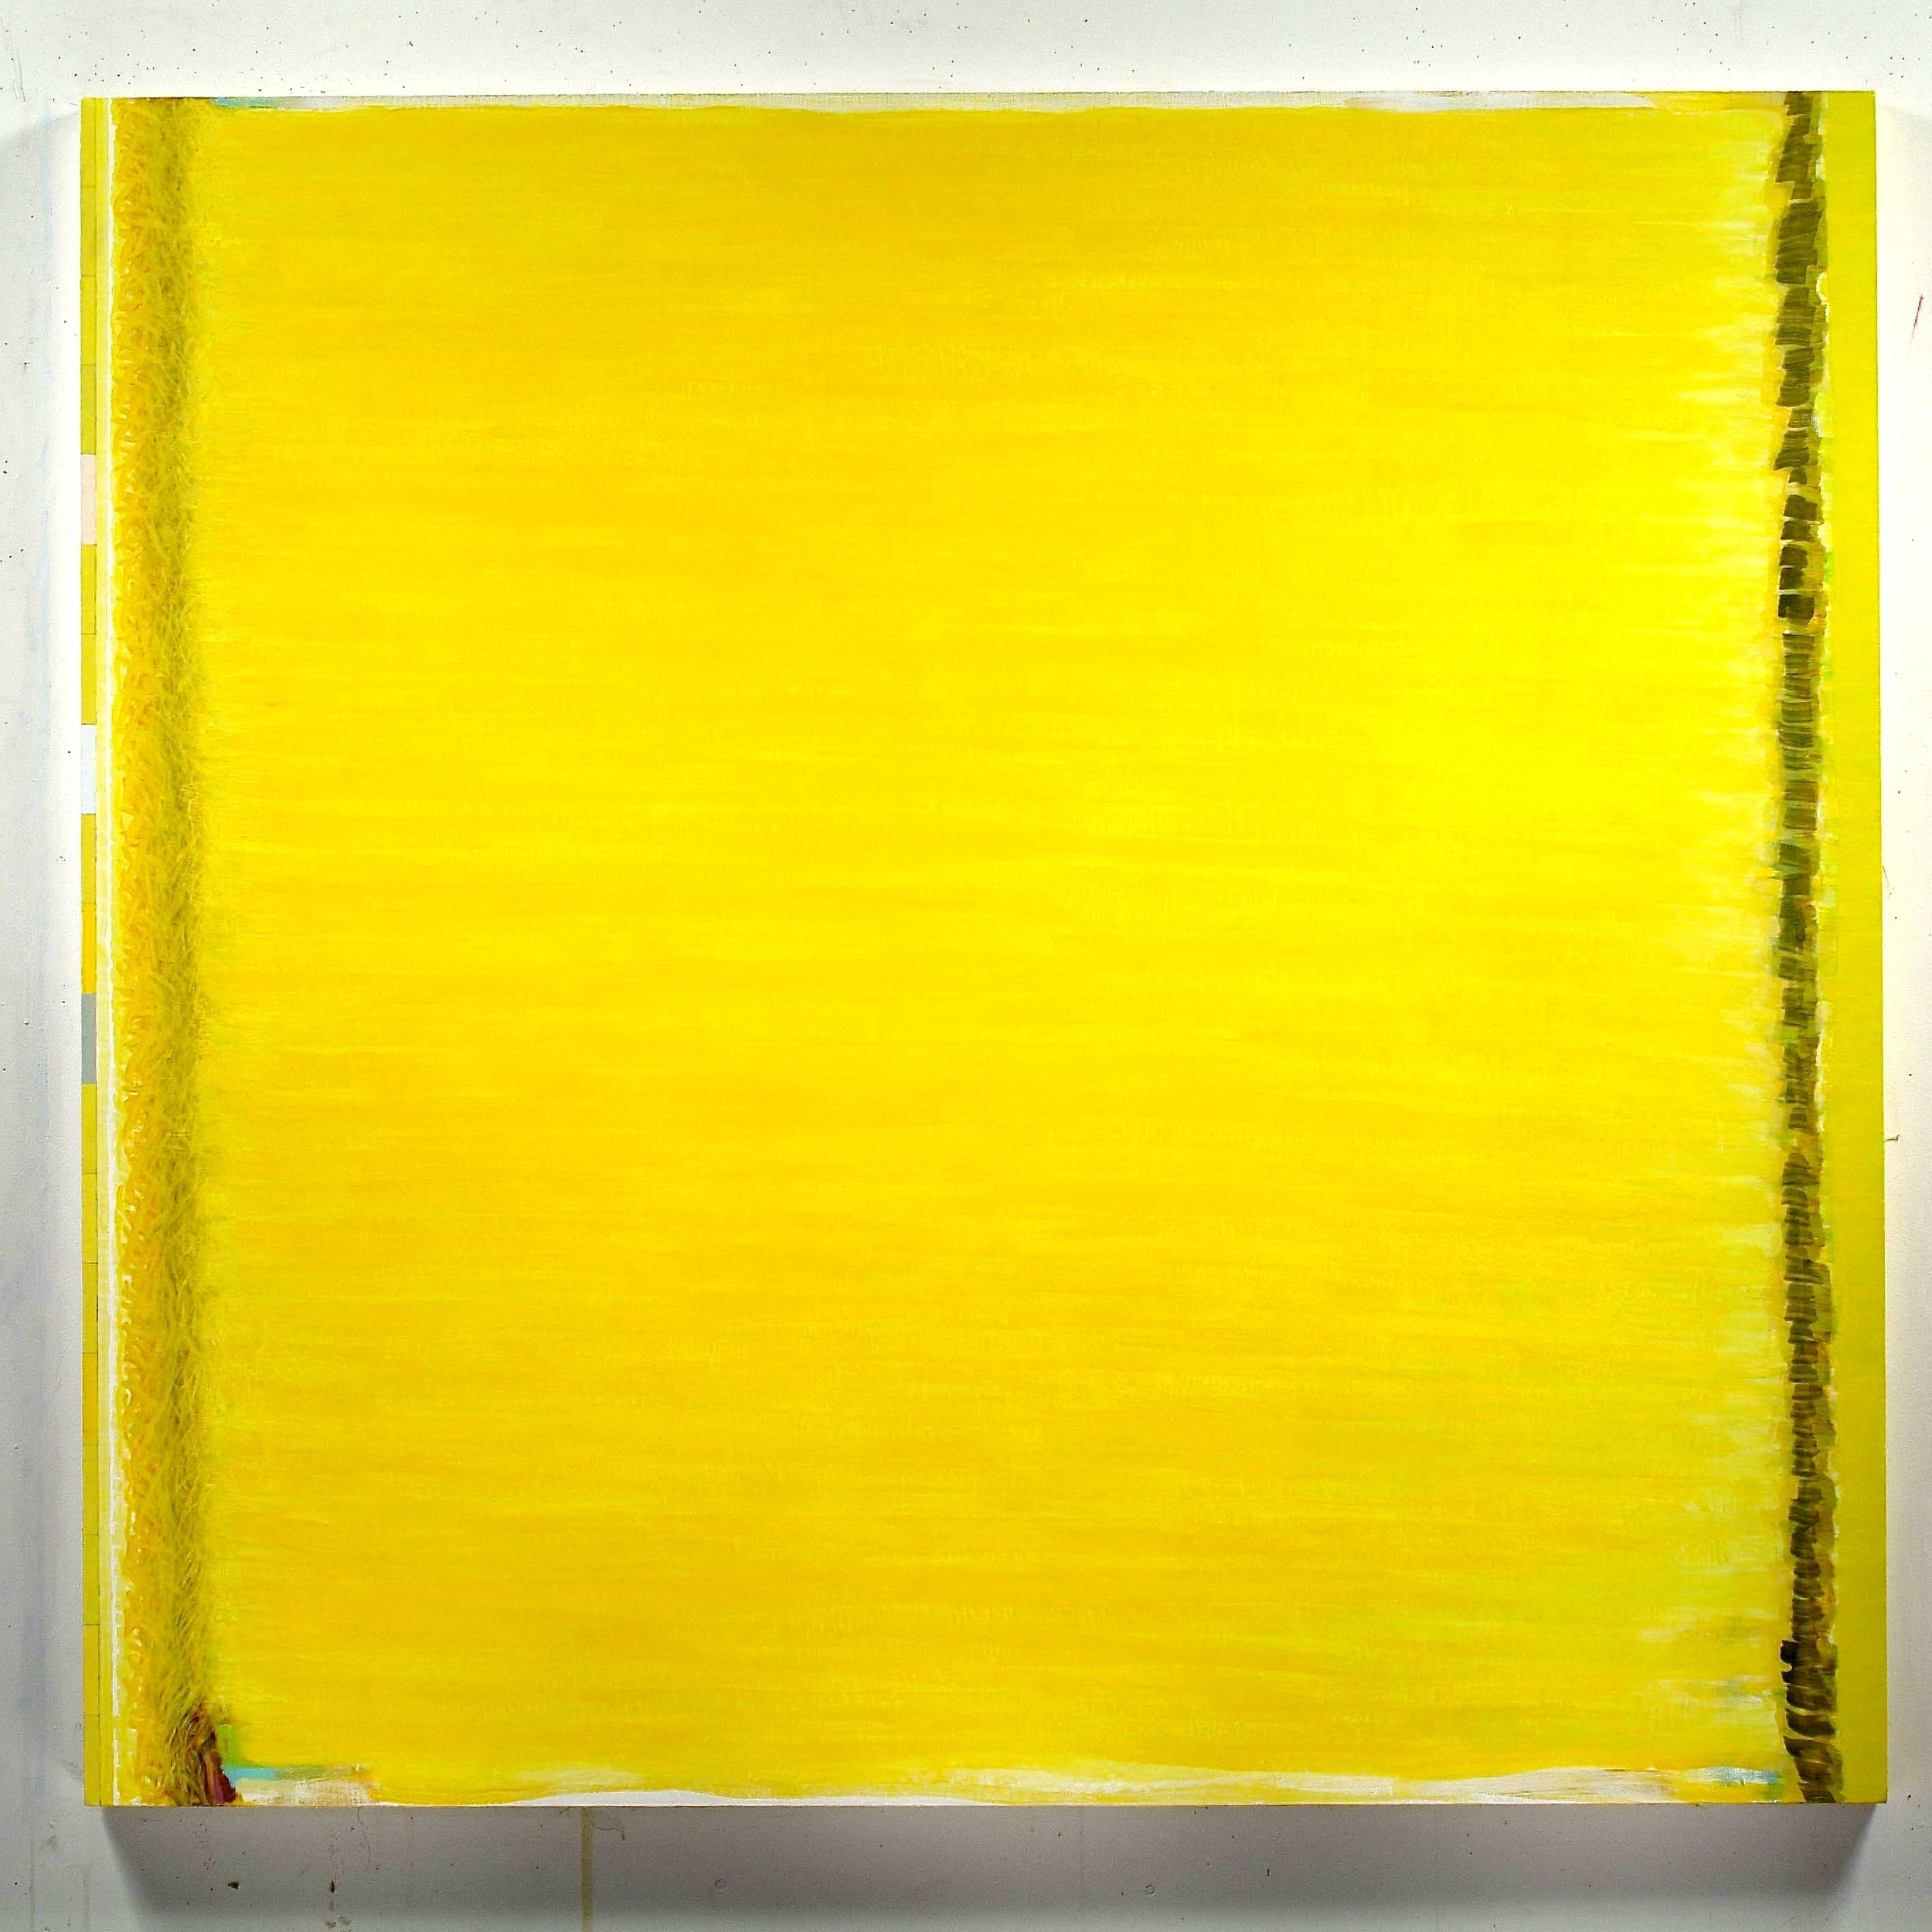 """Impassivity with Space for Movement, 2001, oil on linen, 66 1/2""""x70""""x2"""""""